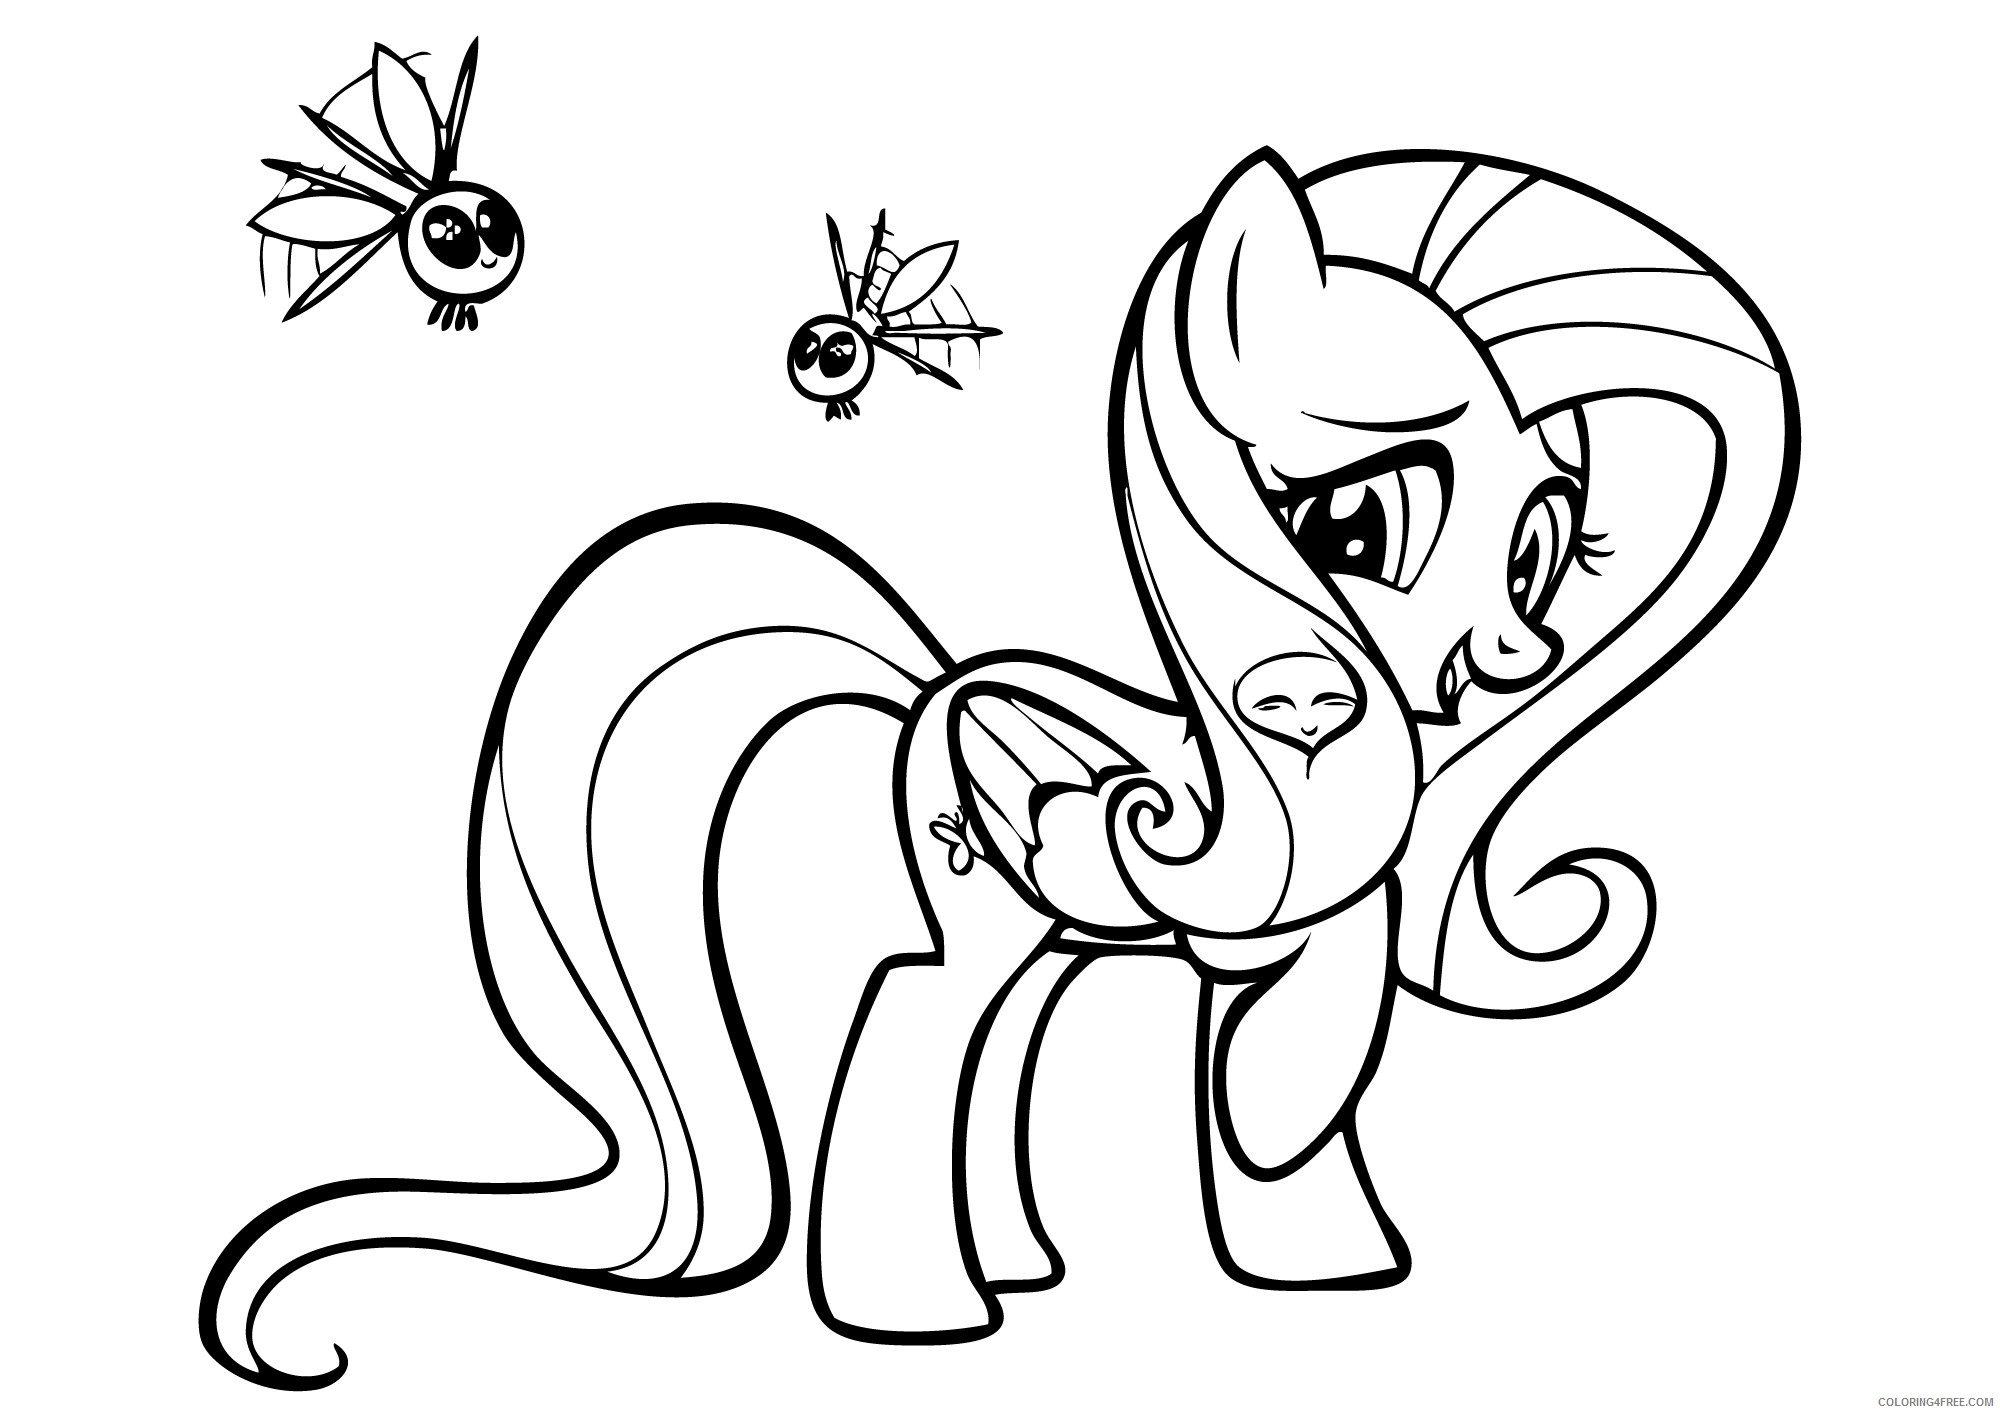 Printable My Little Pony Coloring Pages Fluttershy Coloring4free Coloring4free Com